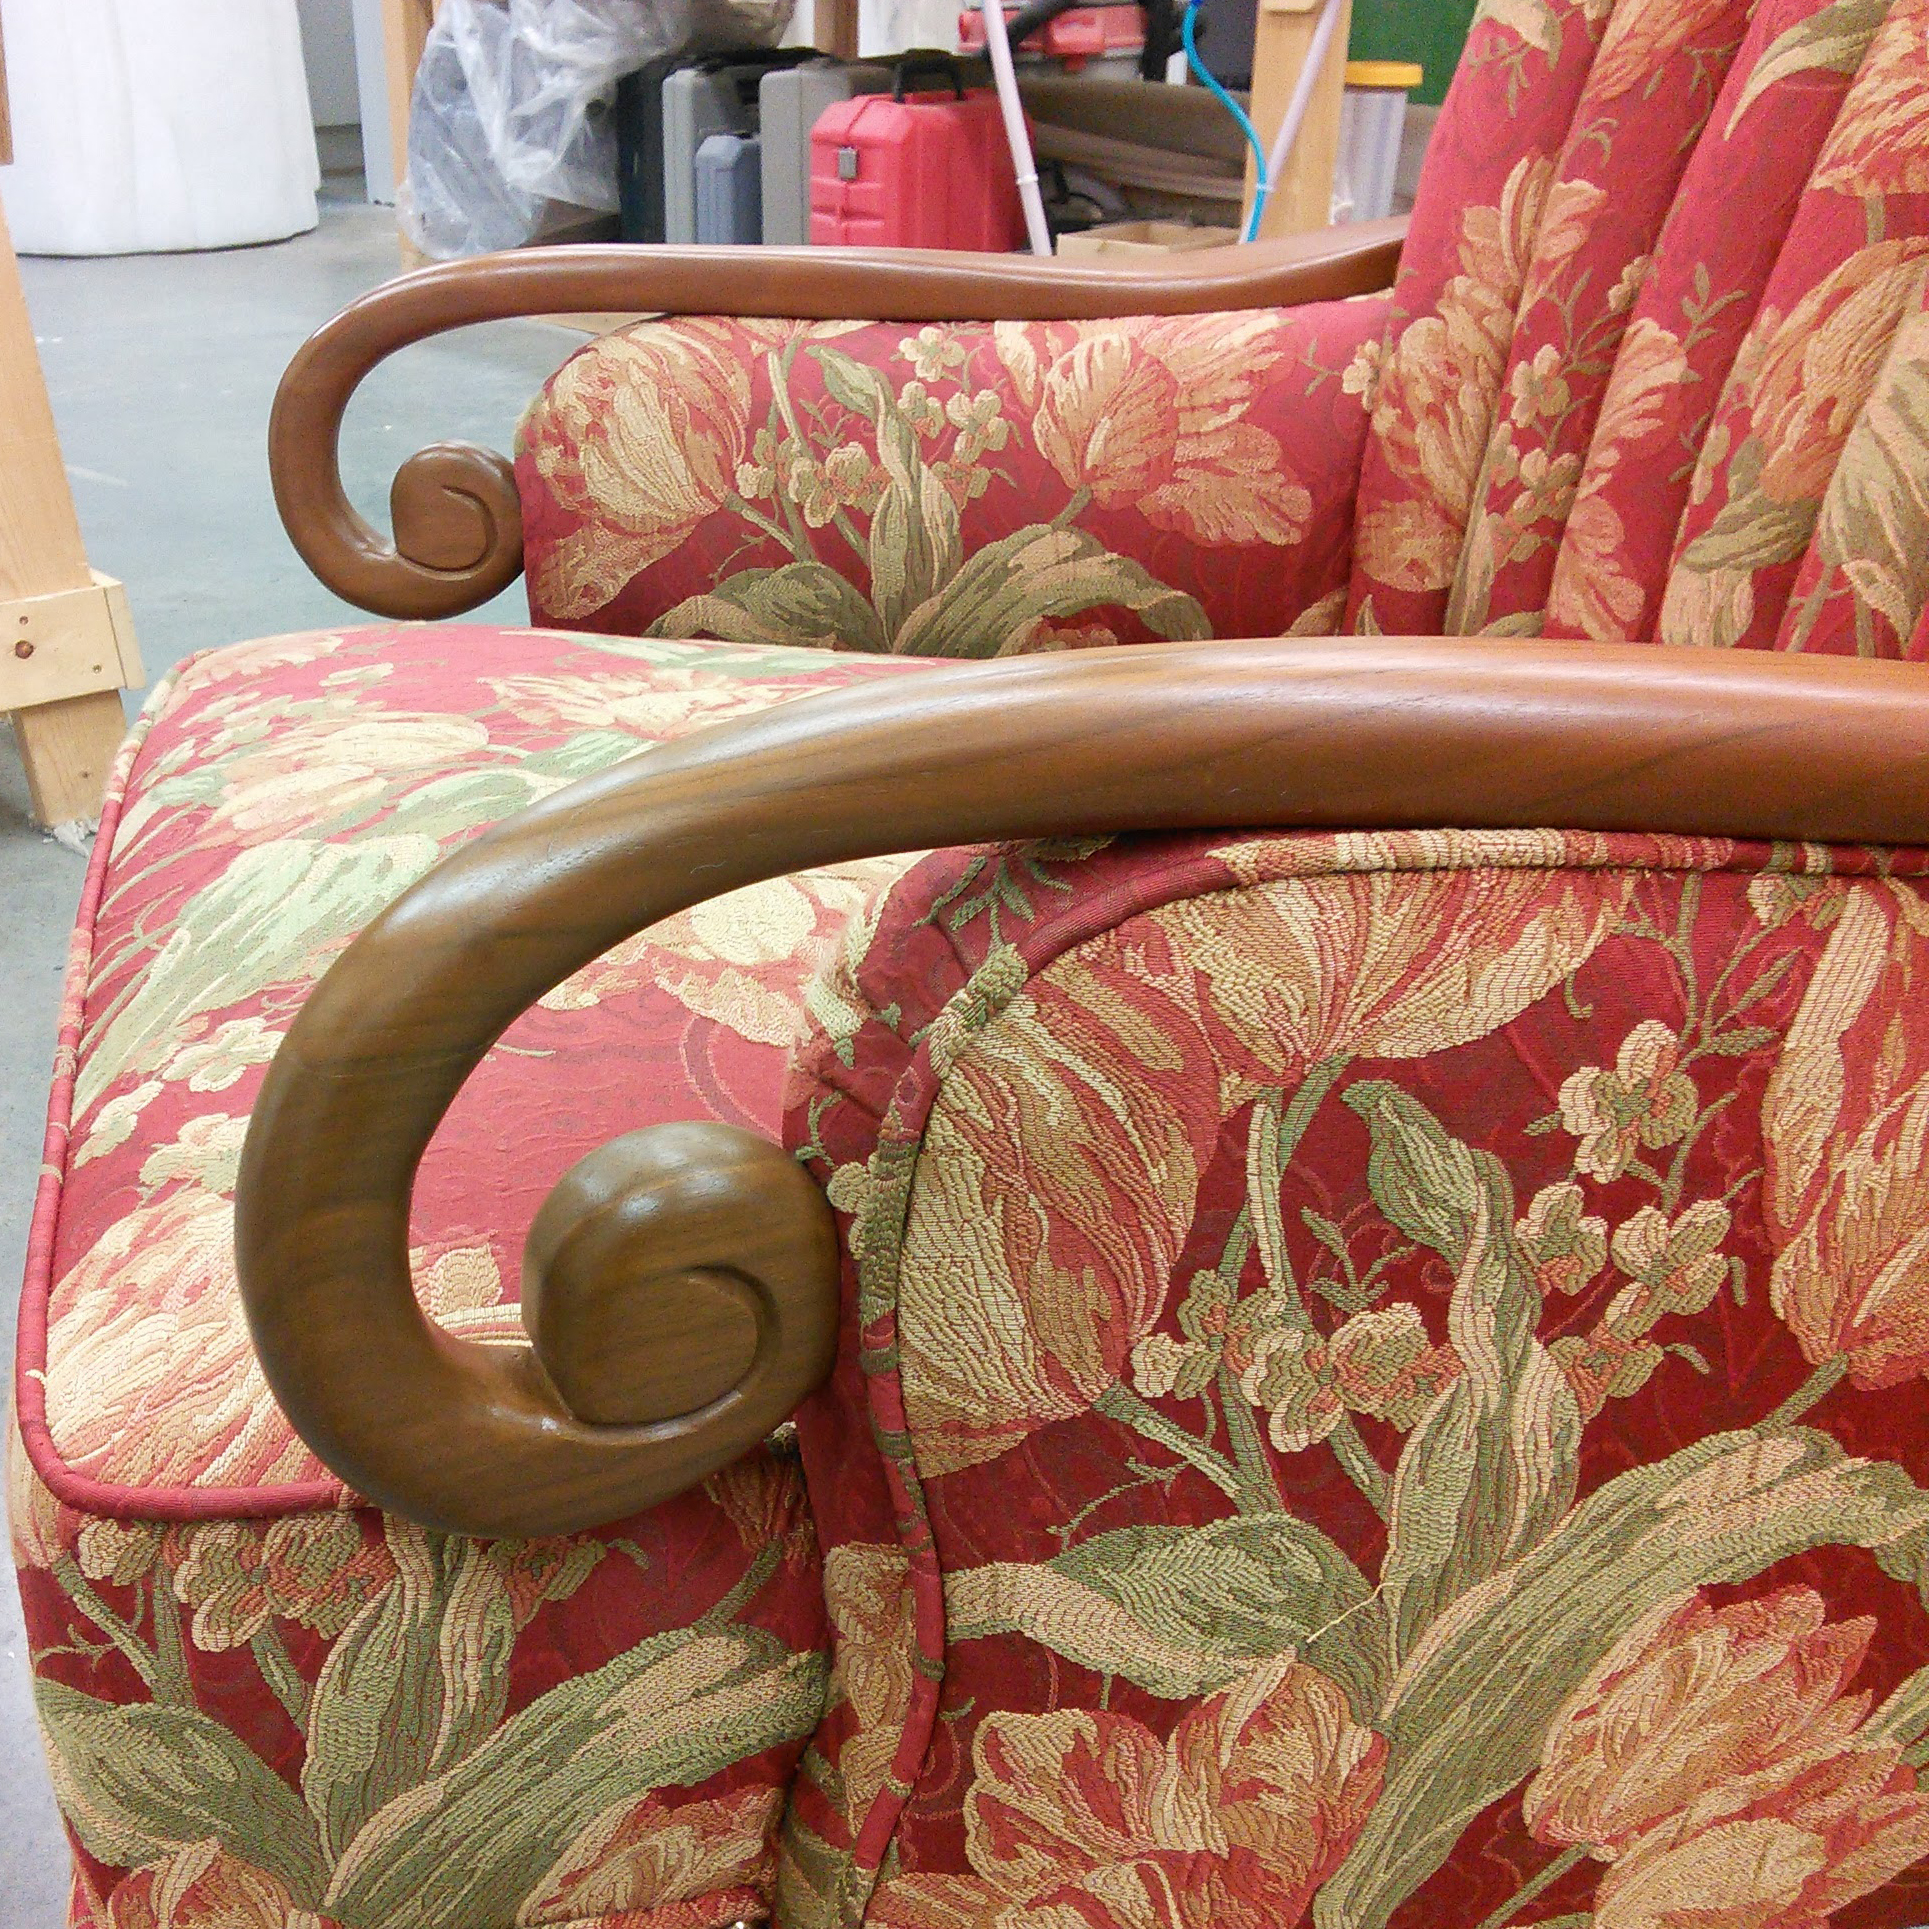 coombs chair arm repair